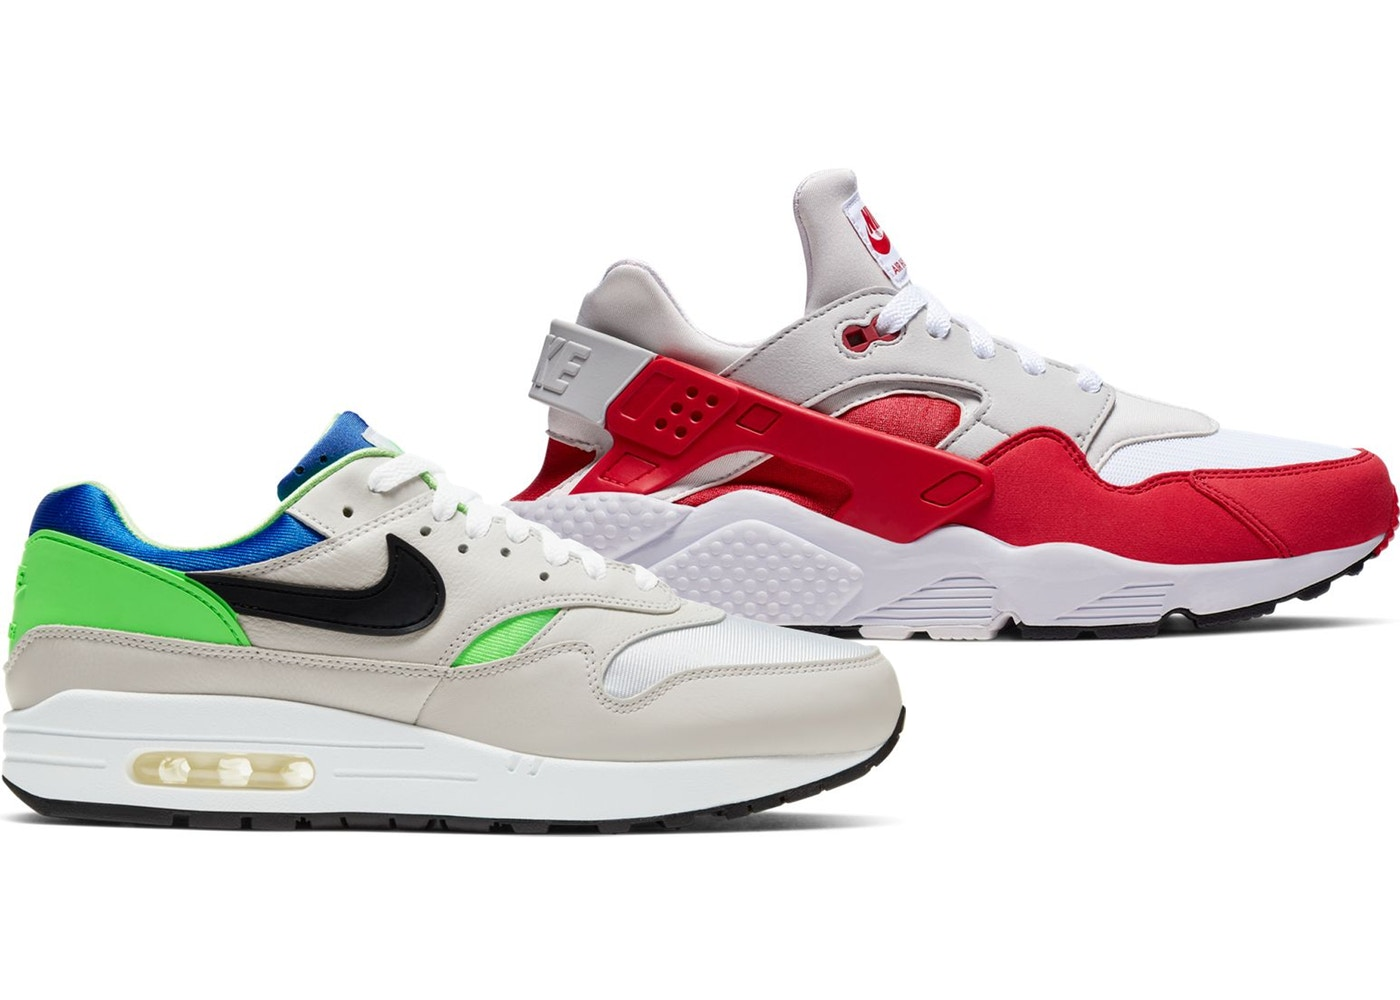 Nike DNA CH.1 Pack Air Max 1 Air Huarache Run